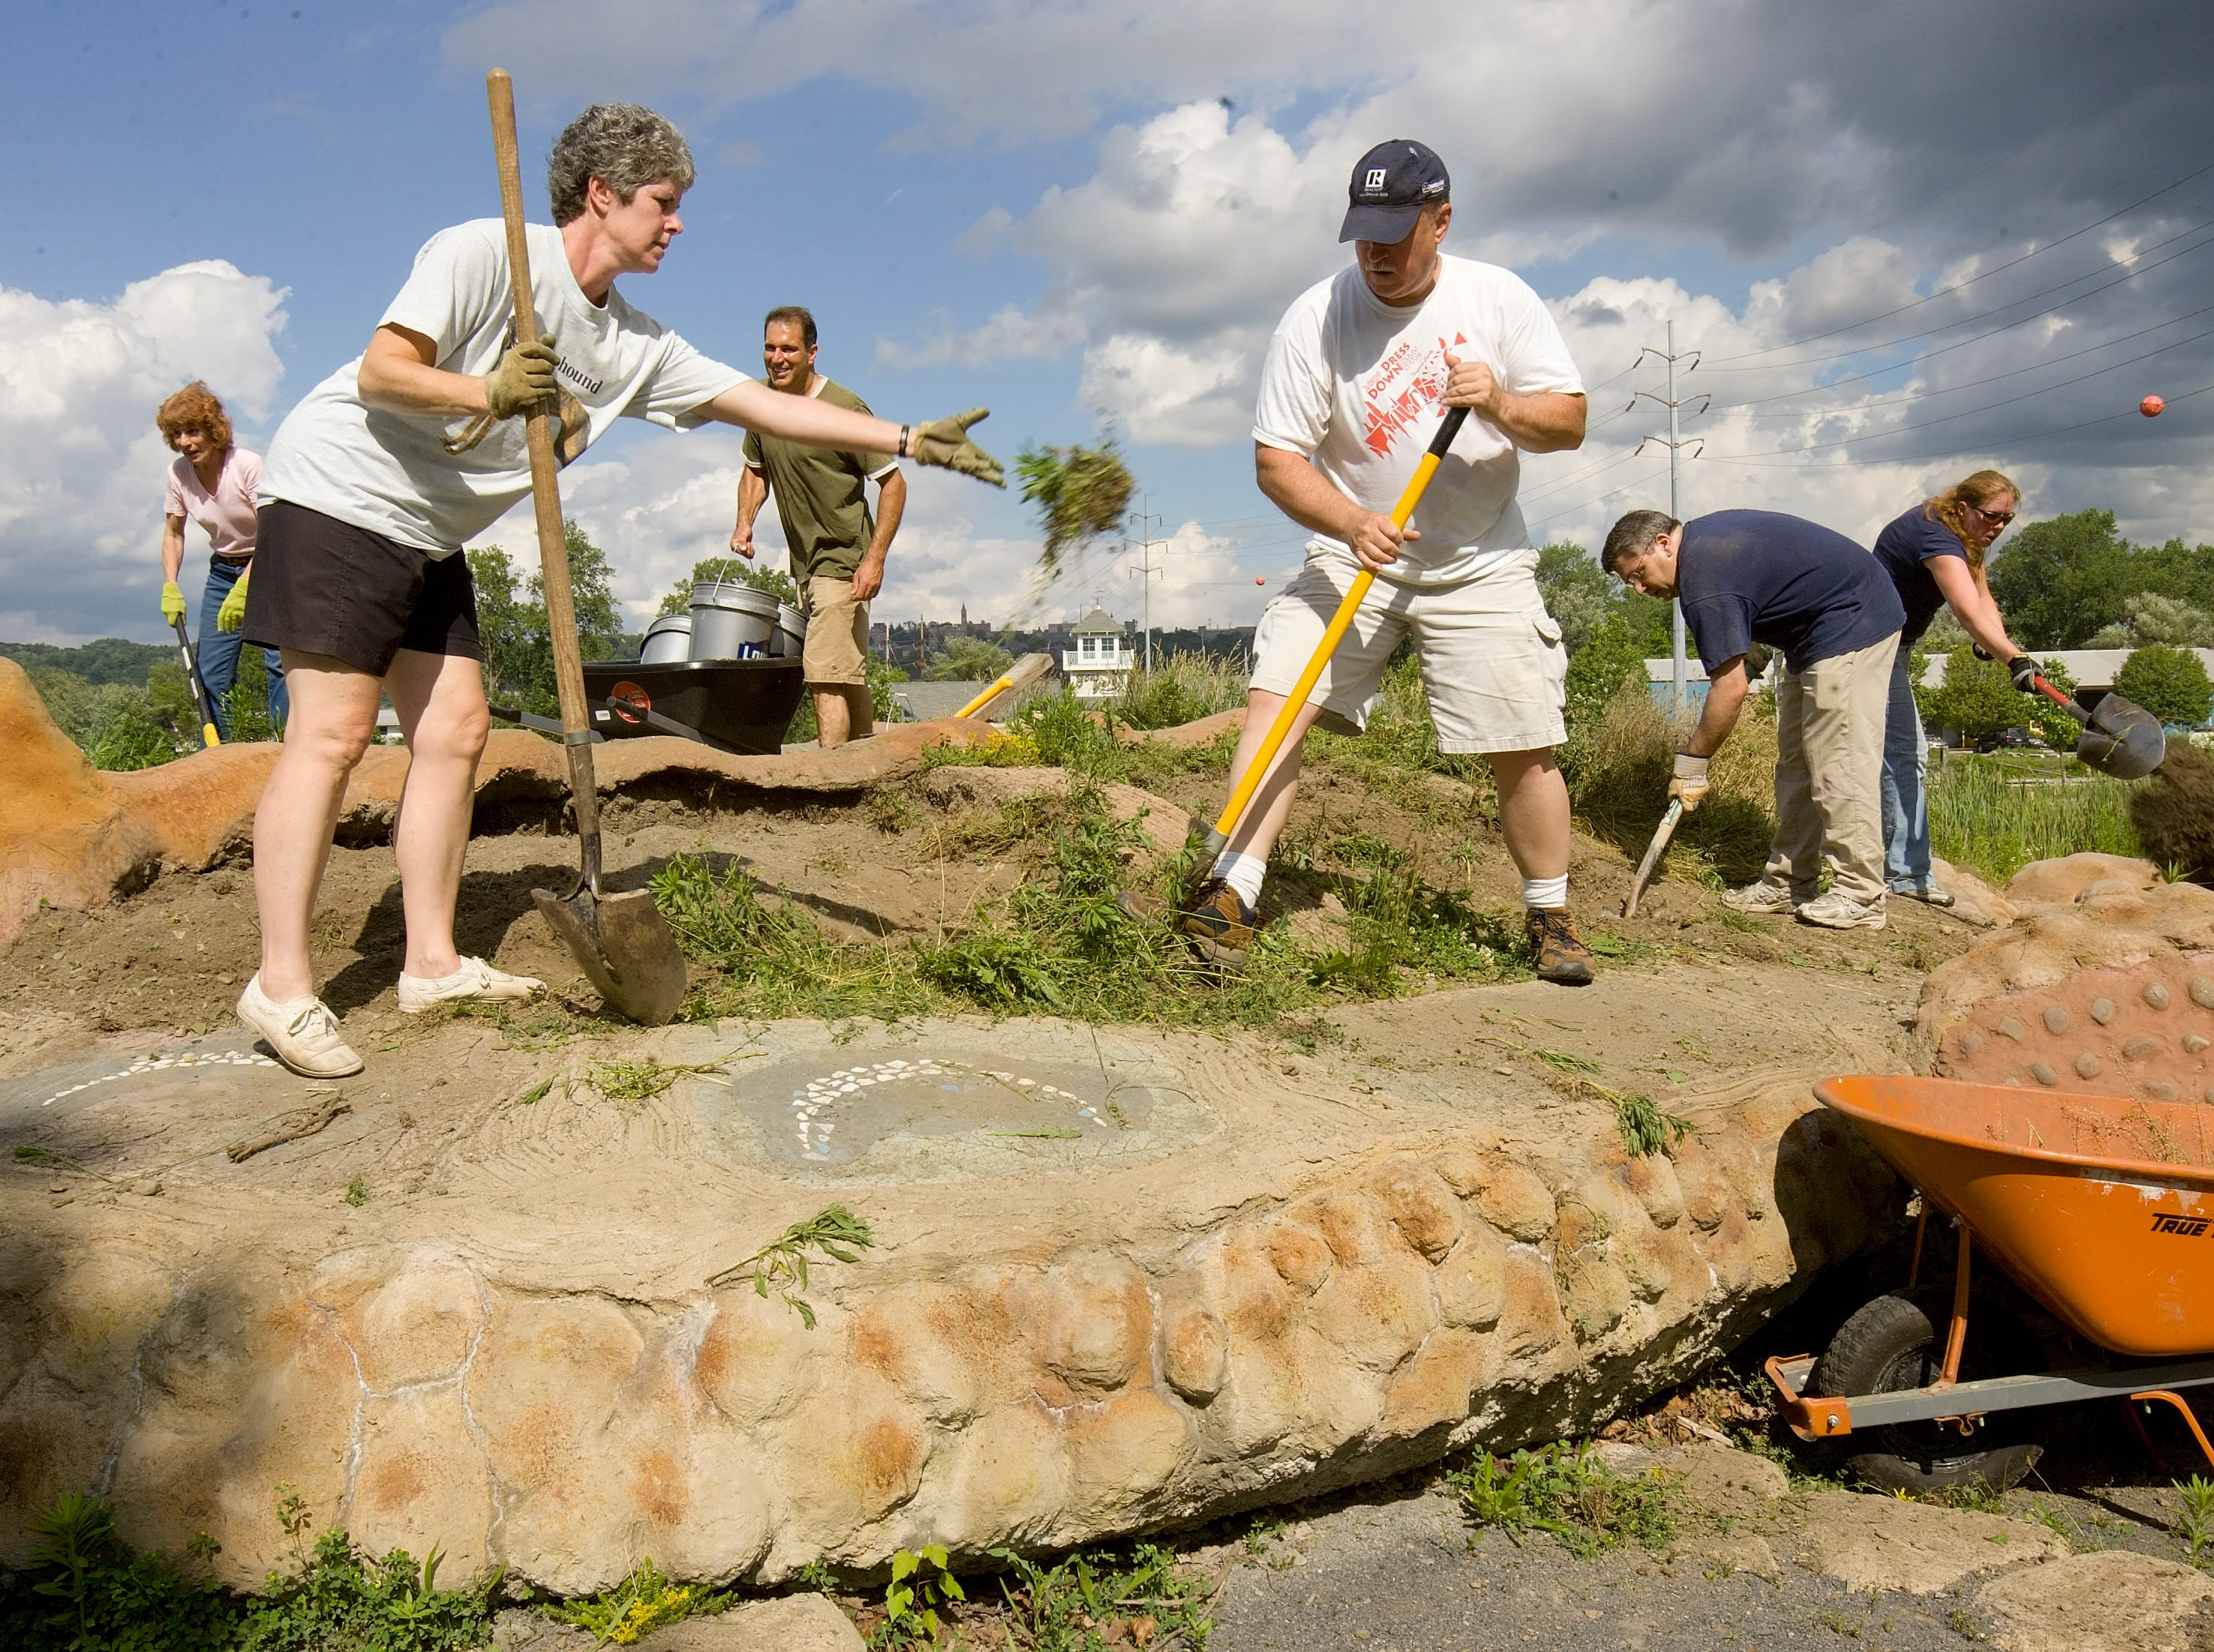 2010: Members of the Ithaca Board of Realtors work replace the plantings on Gaia the Turtle Thursday afternoon at the Ithaca Children's Garden in Cass Park in Ithaca.